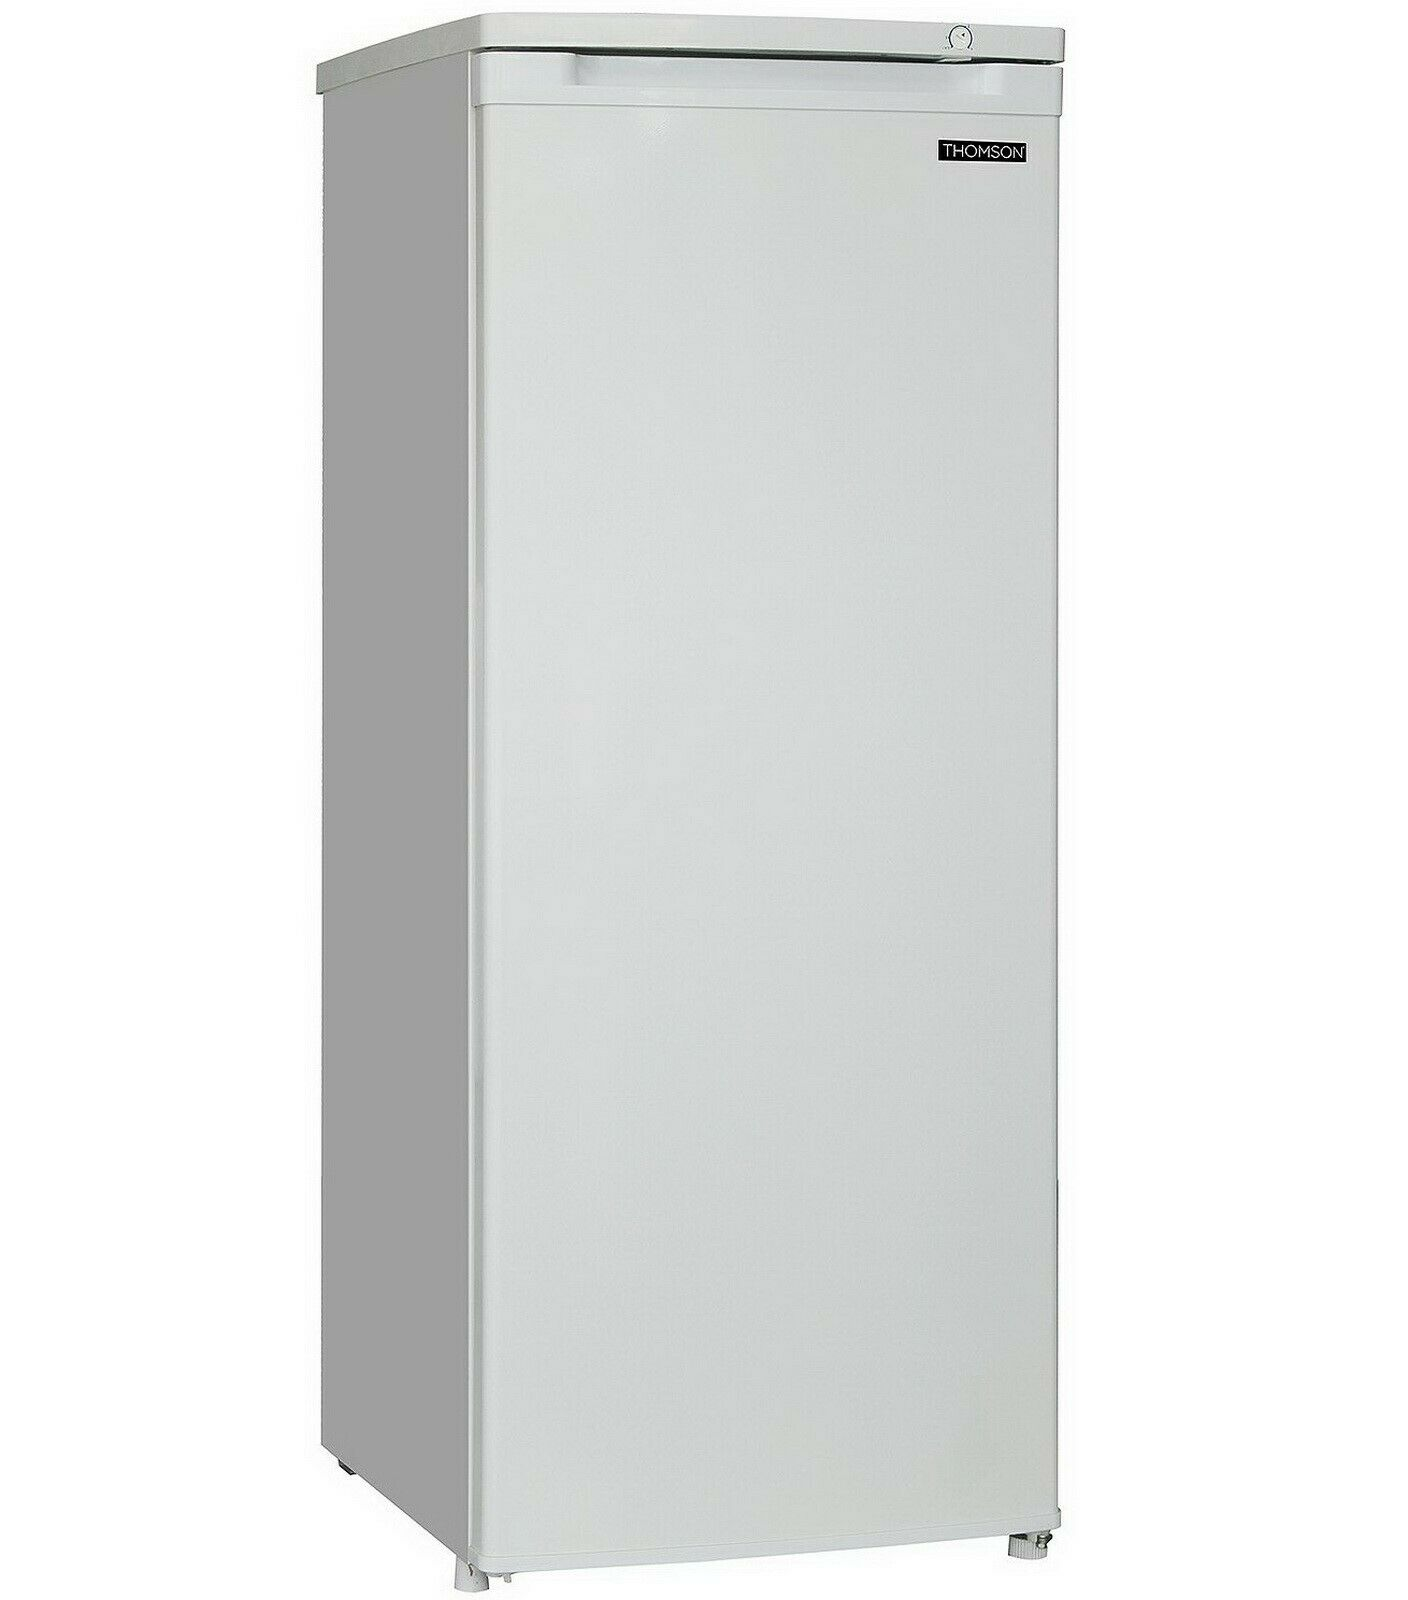 "Thomson Upright Freezer 6.5 cu ft 55"" Tall Frozen Food Stora"